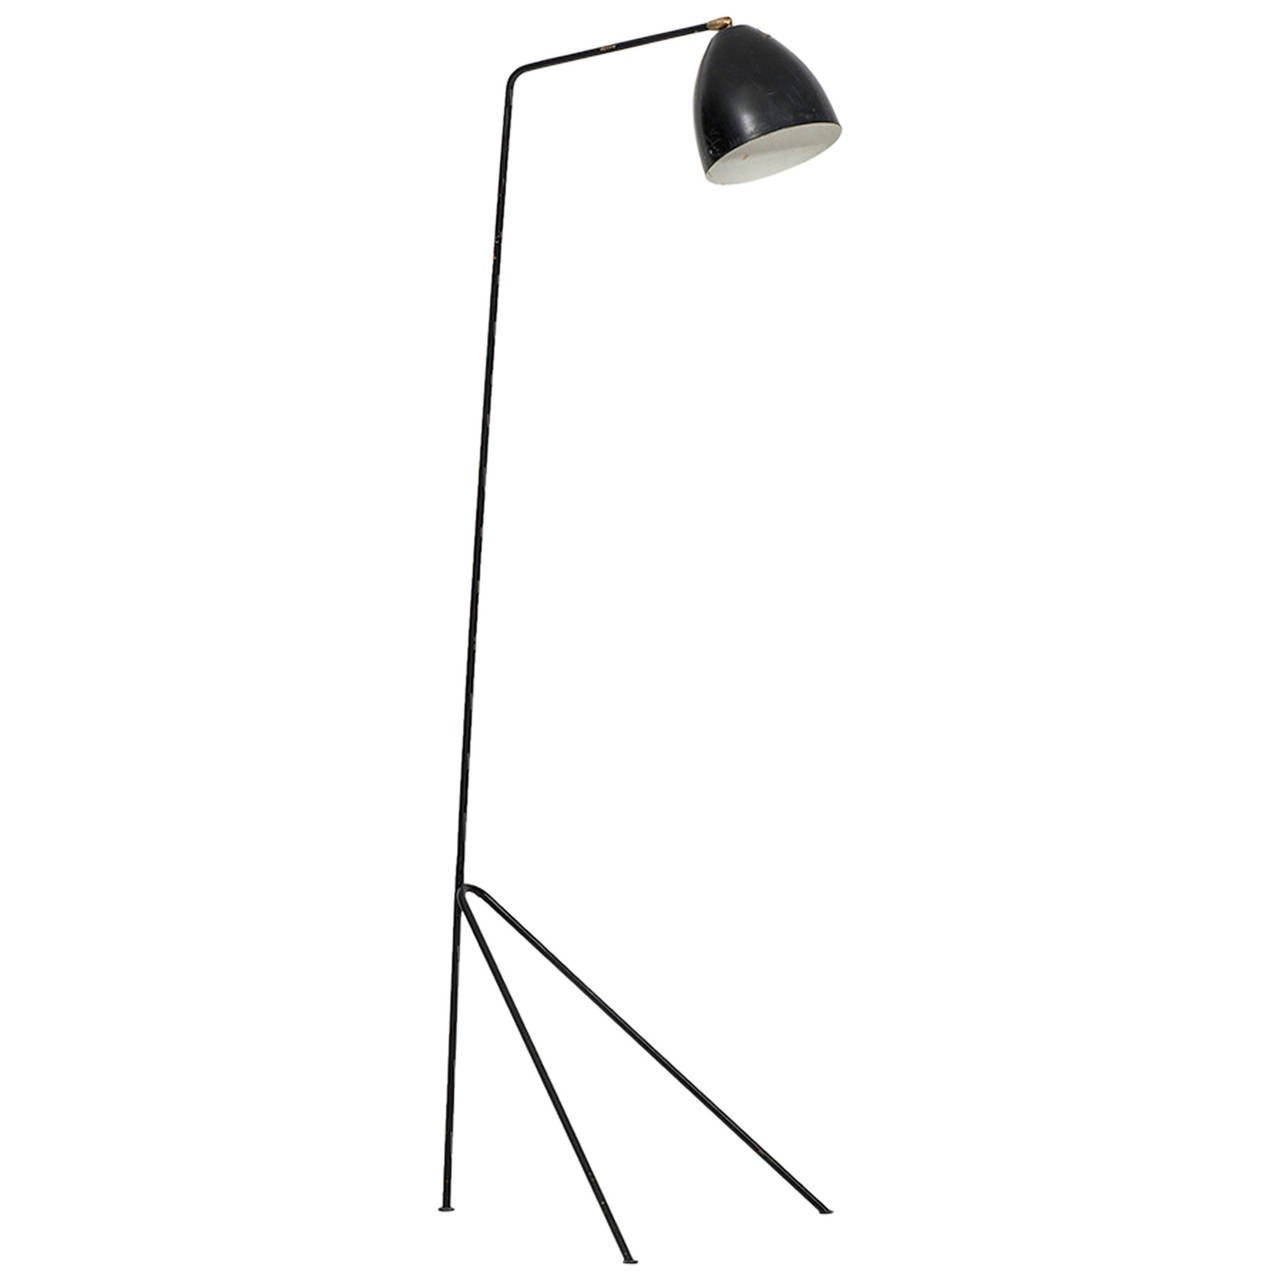 Midcentury Floor Lamp in the Manner of Greta Grossman